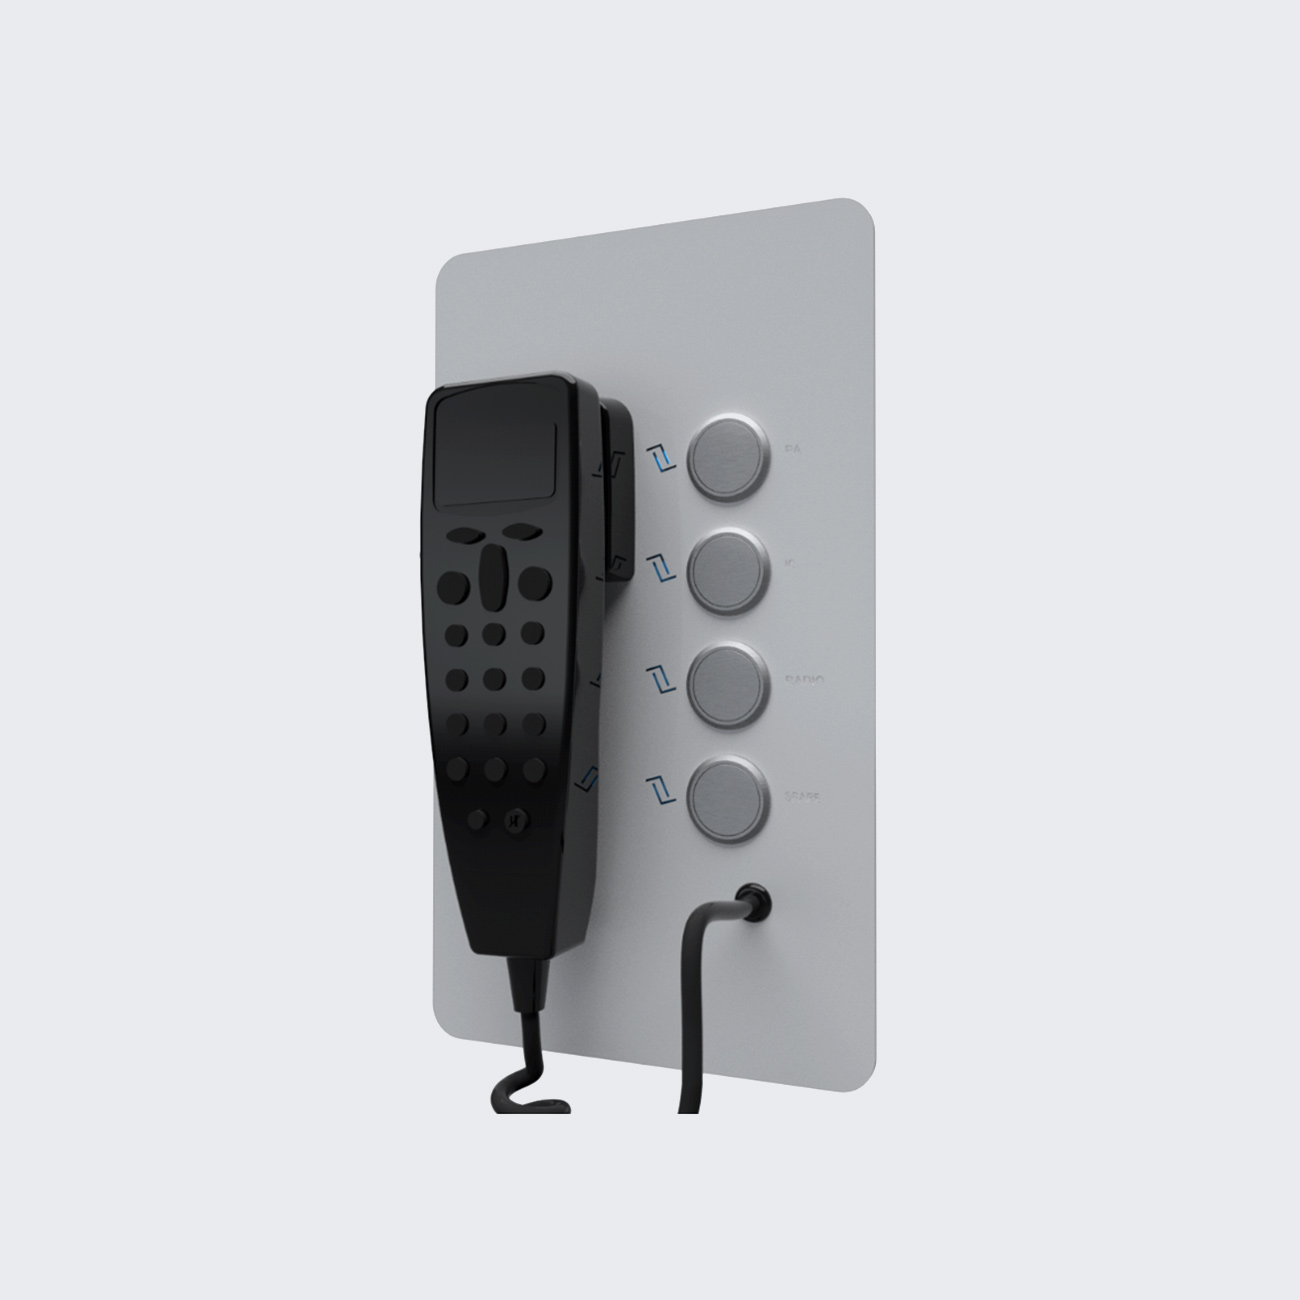 TRAIN INTERCOM UNIT (TIU)